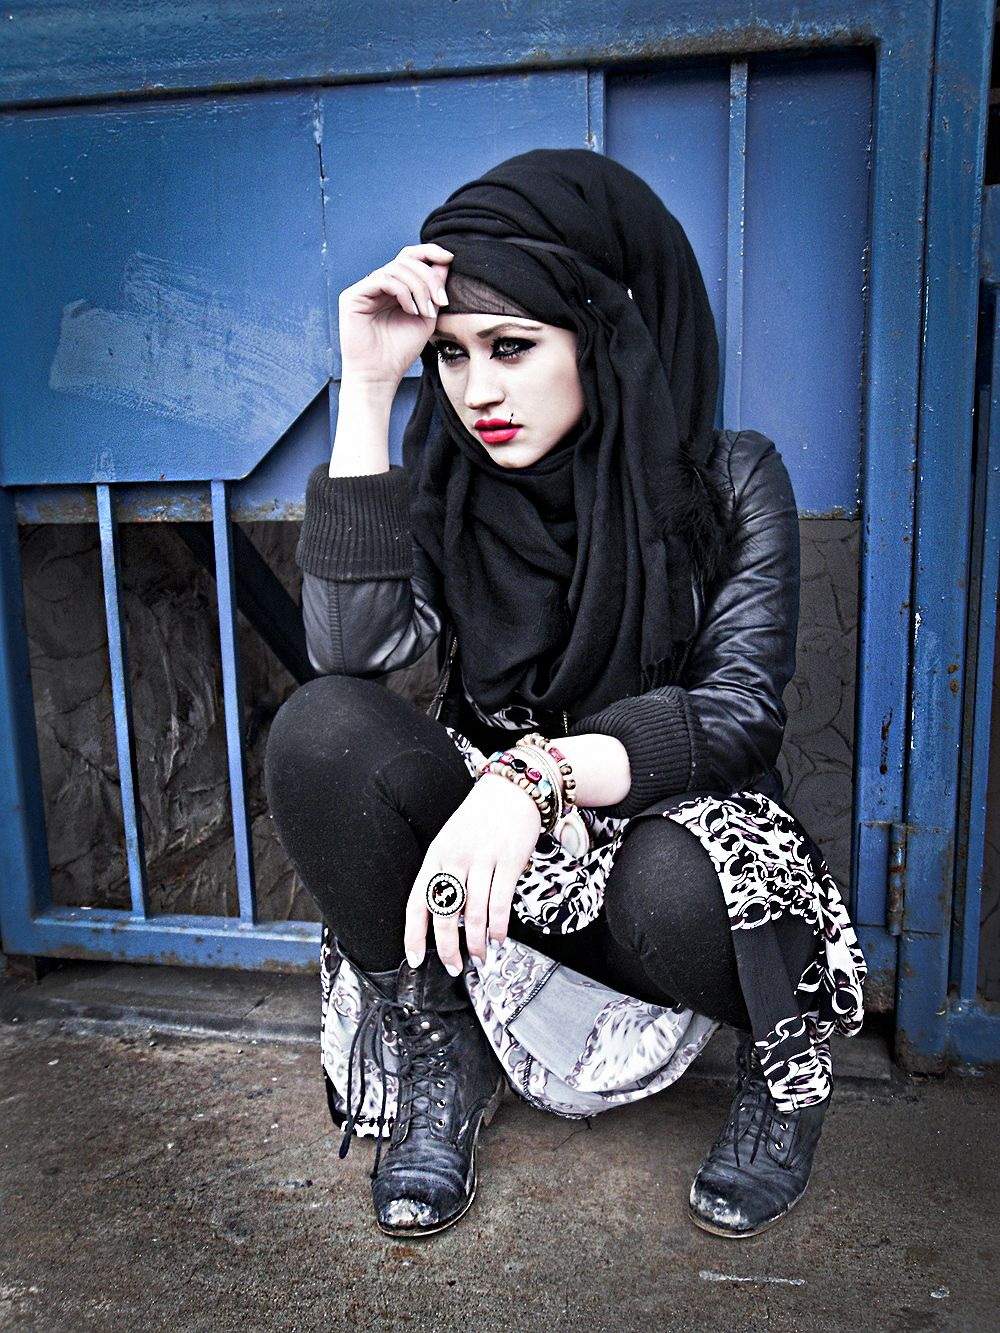 cool muslim single women What muslim women really want in the bedroom sex is taboo subject for most muslims however, a growing number of young muslim women are talking about what they really want when in the bedroom.